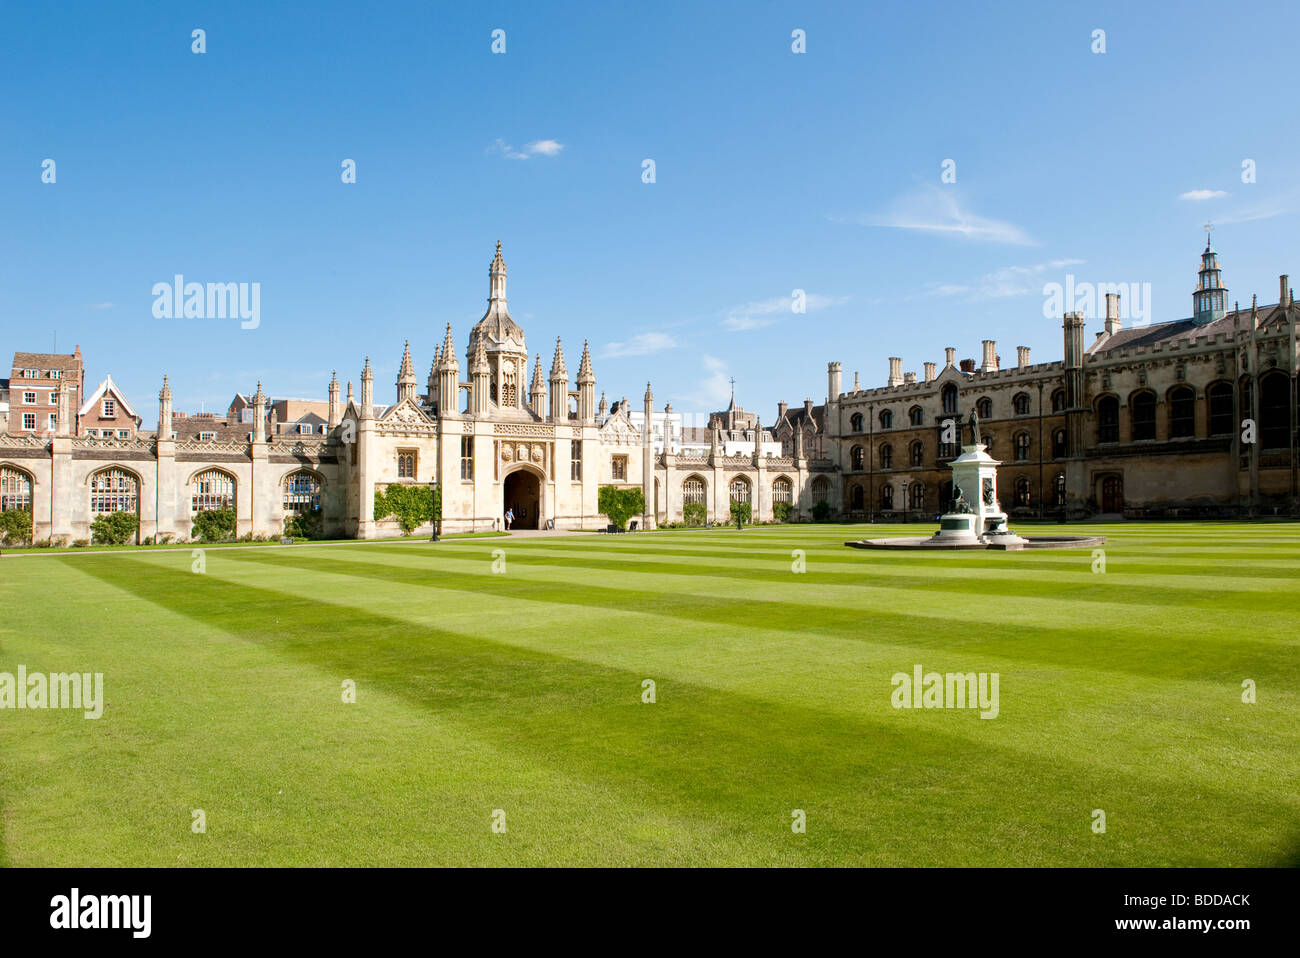 Trinity College, Cambridge, UK - The College of the Holy and Undivided Trinity - Stock Image